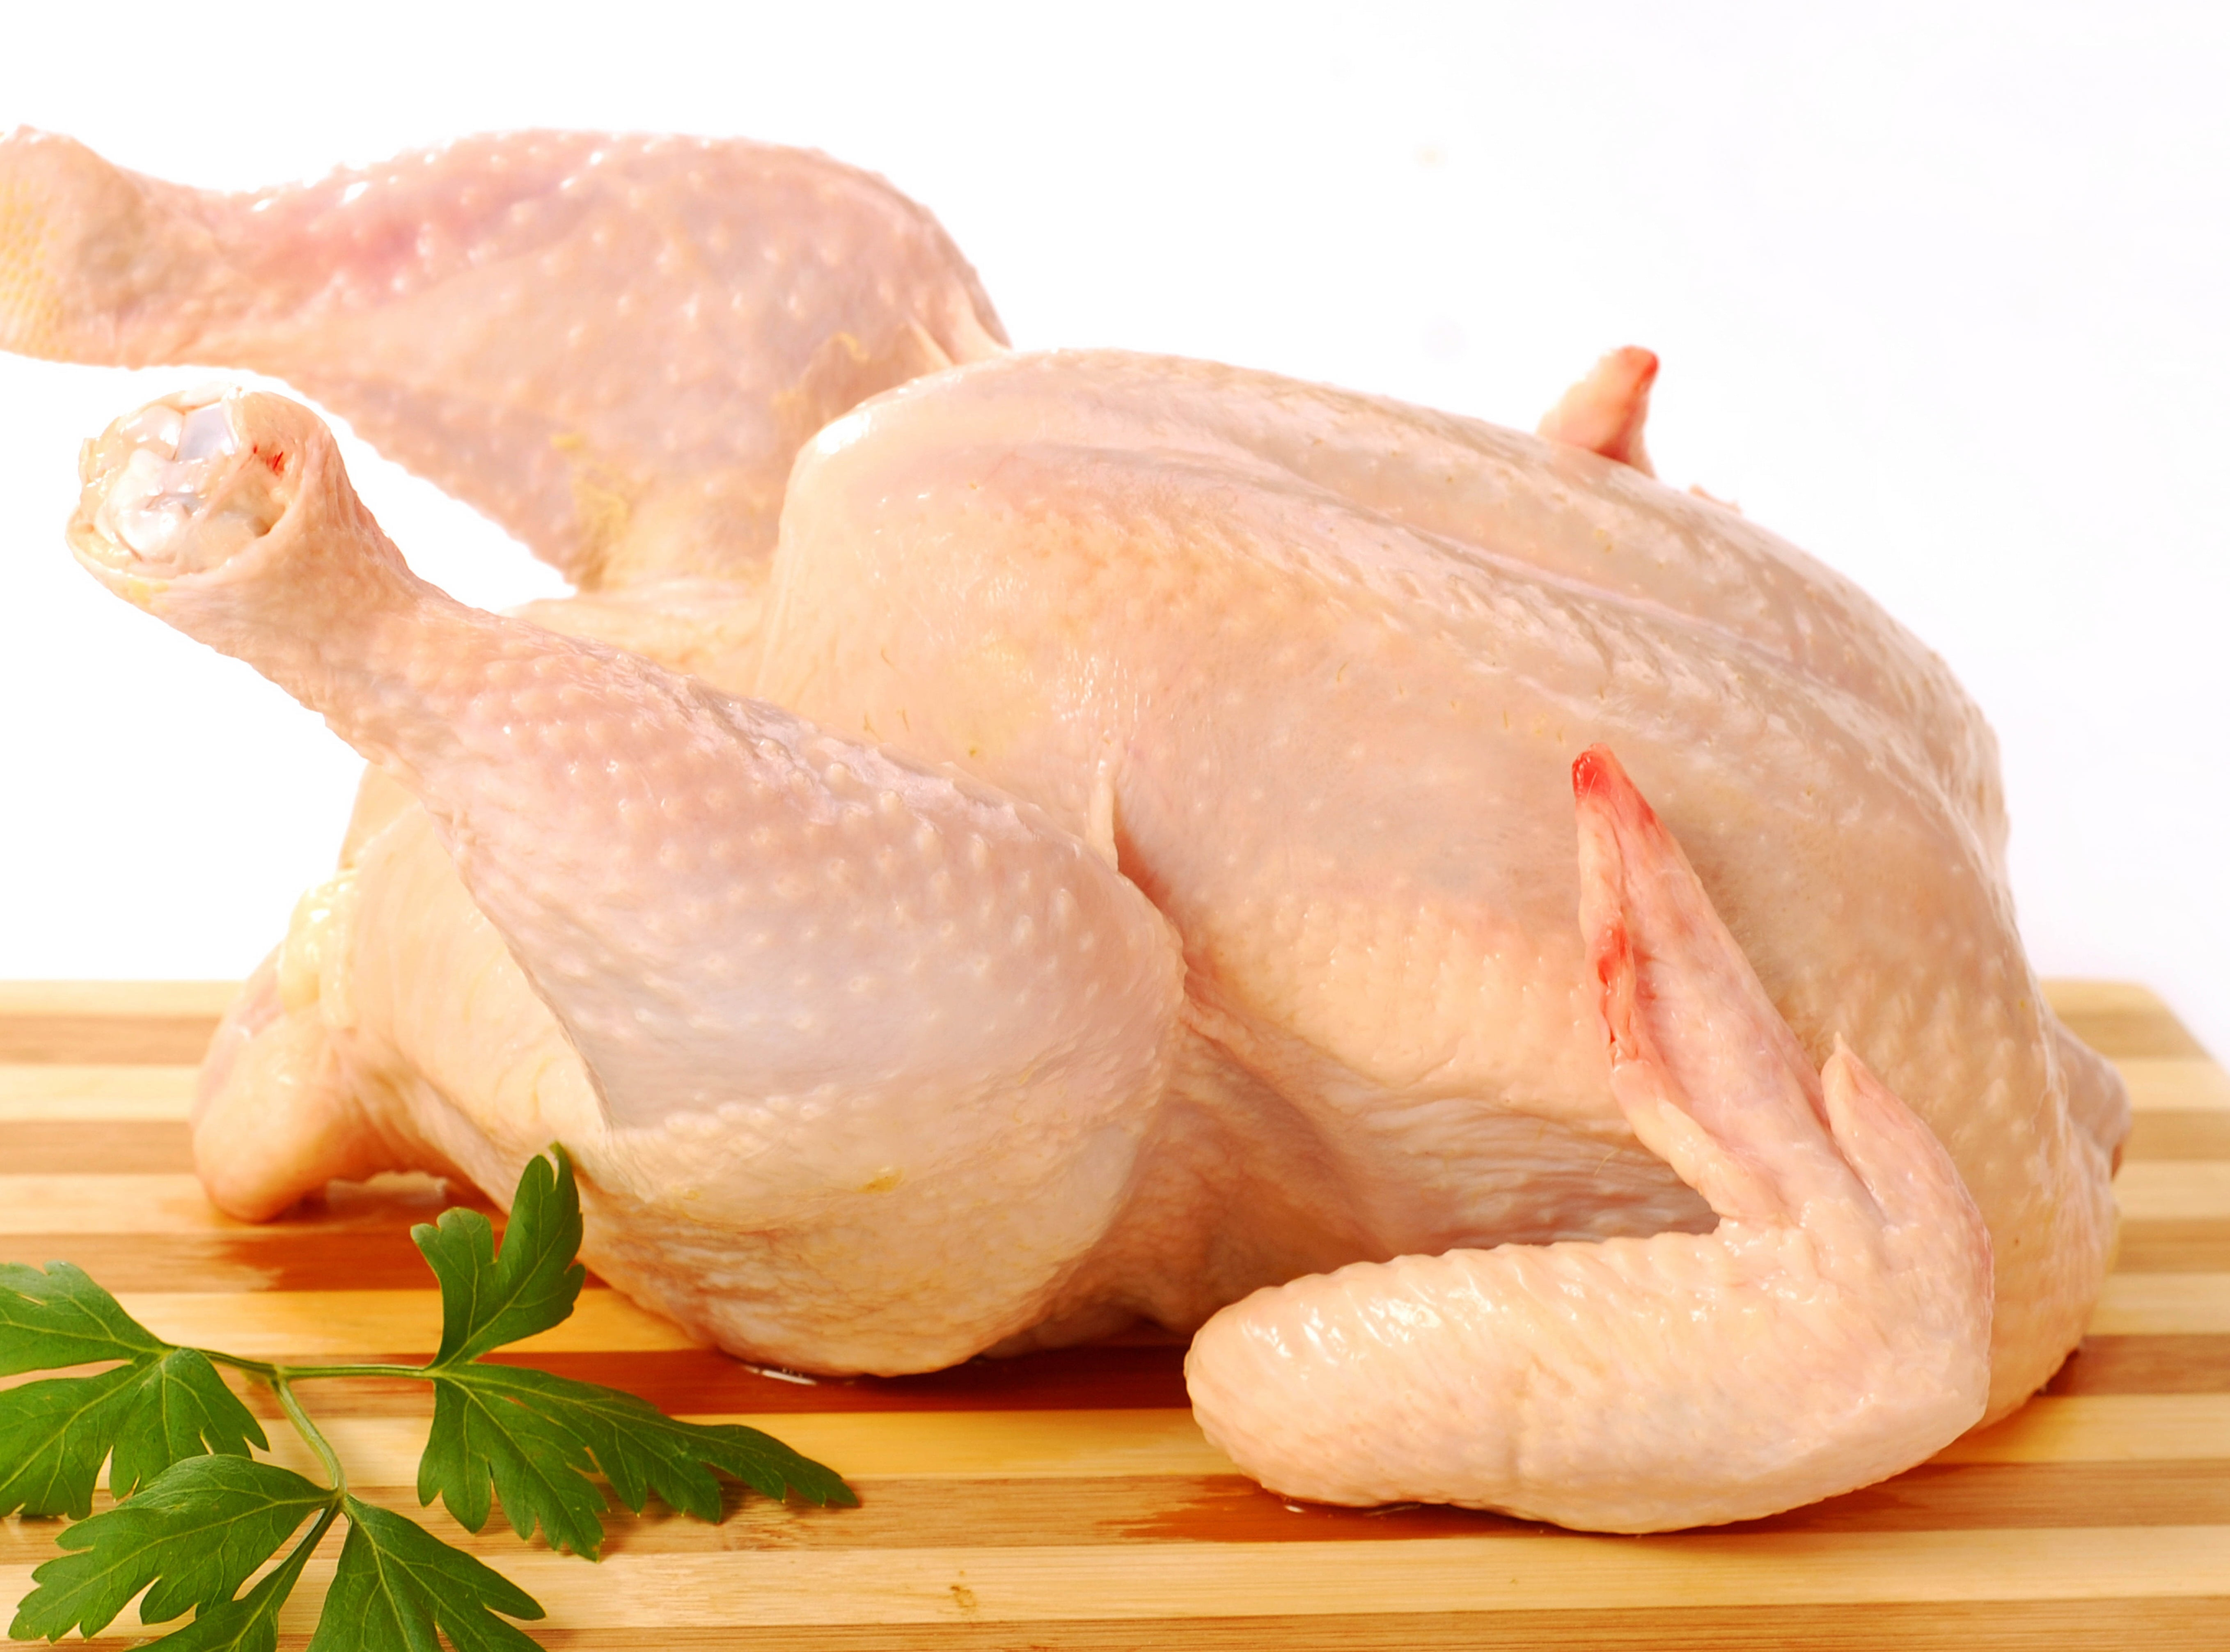 Iphone 2g Wallpaper For Iphone X Chicken Raw Meat At Wooden Tabletop Hd Wallpaper